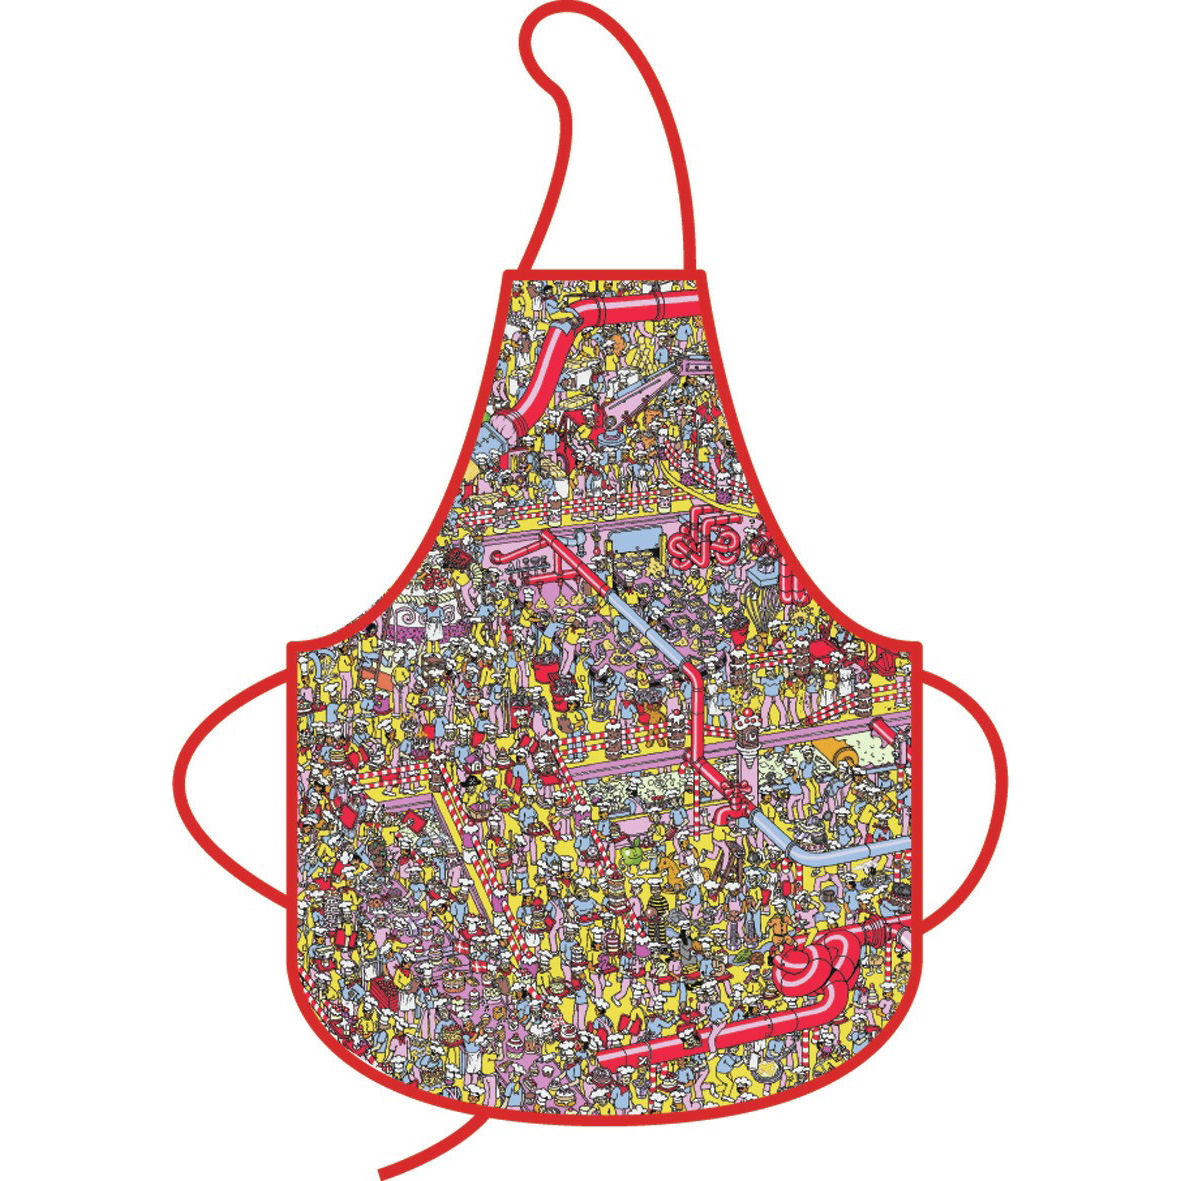 Kitchen Apron : NEW WHERES WALLY CAKE FACTORY KITCHEN APRON 100% COTTON ADULT BBQ ...